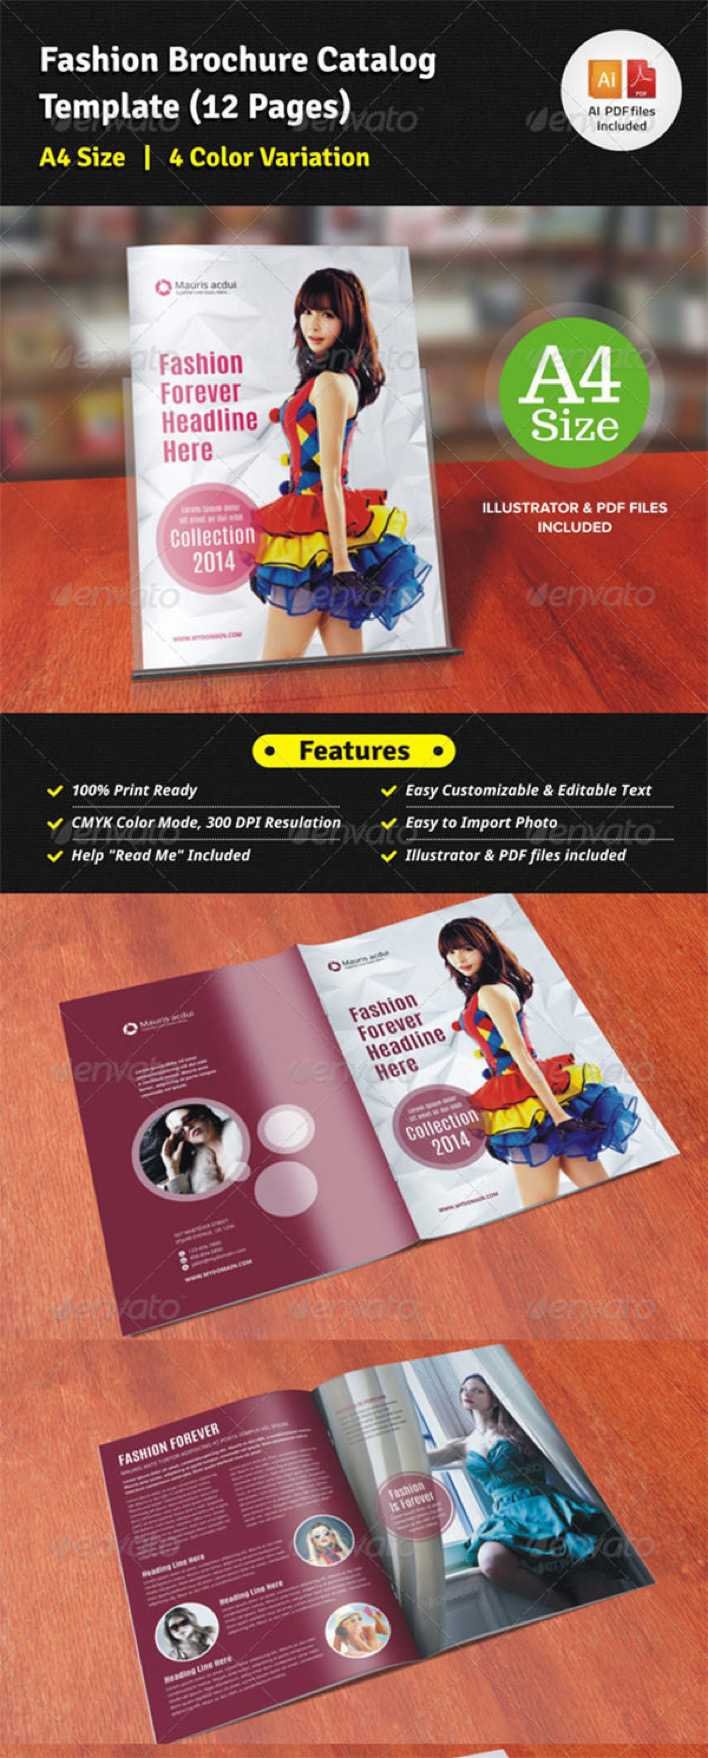 Fashion brochure catalog 12 pages download free for 12 page brochure template